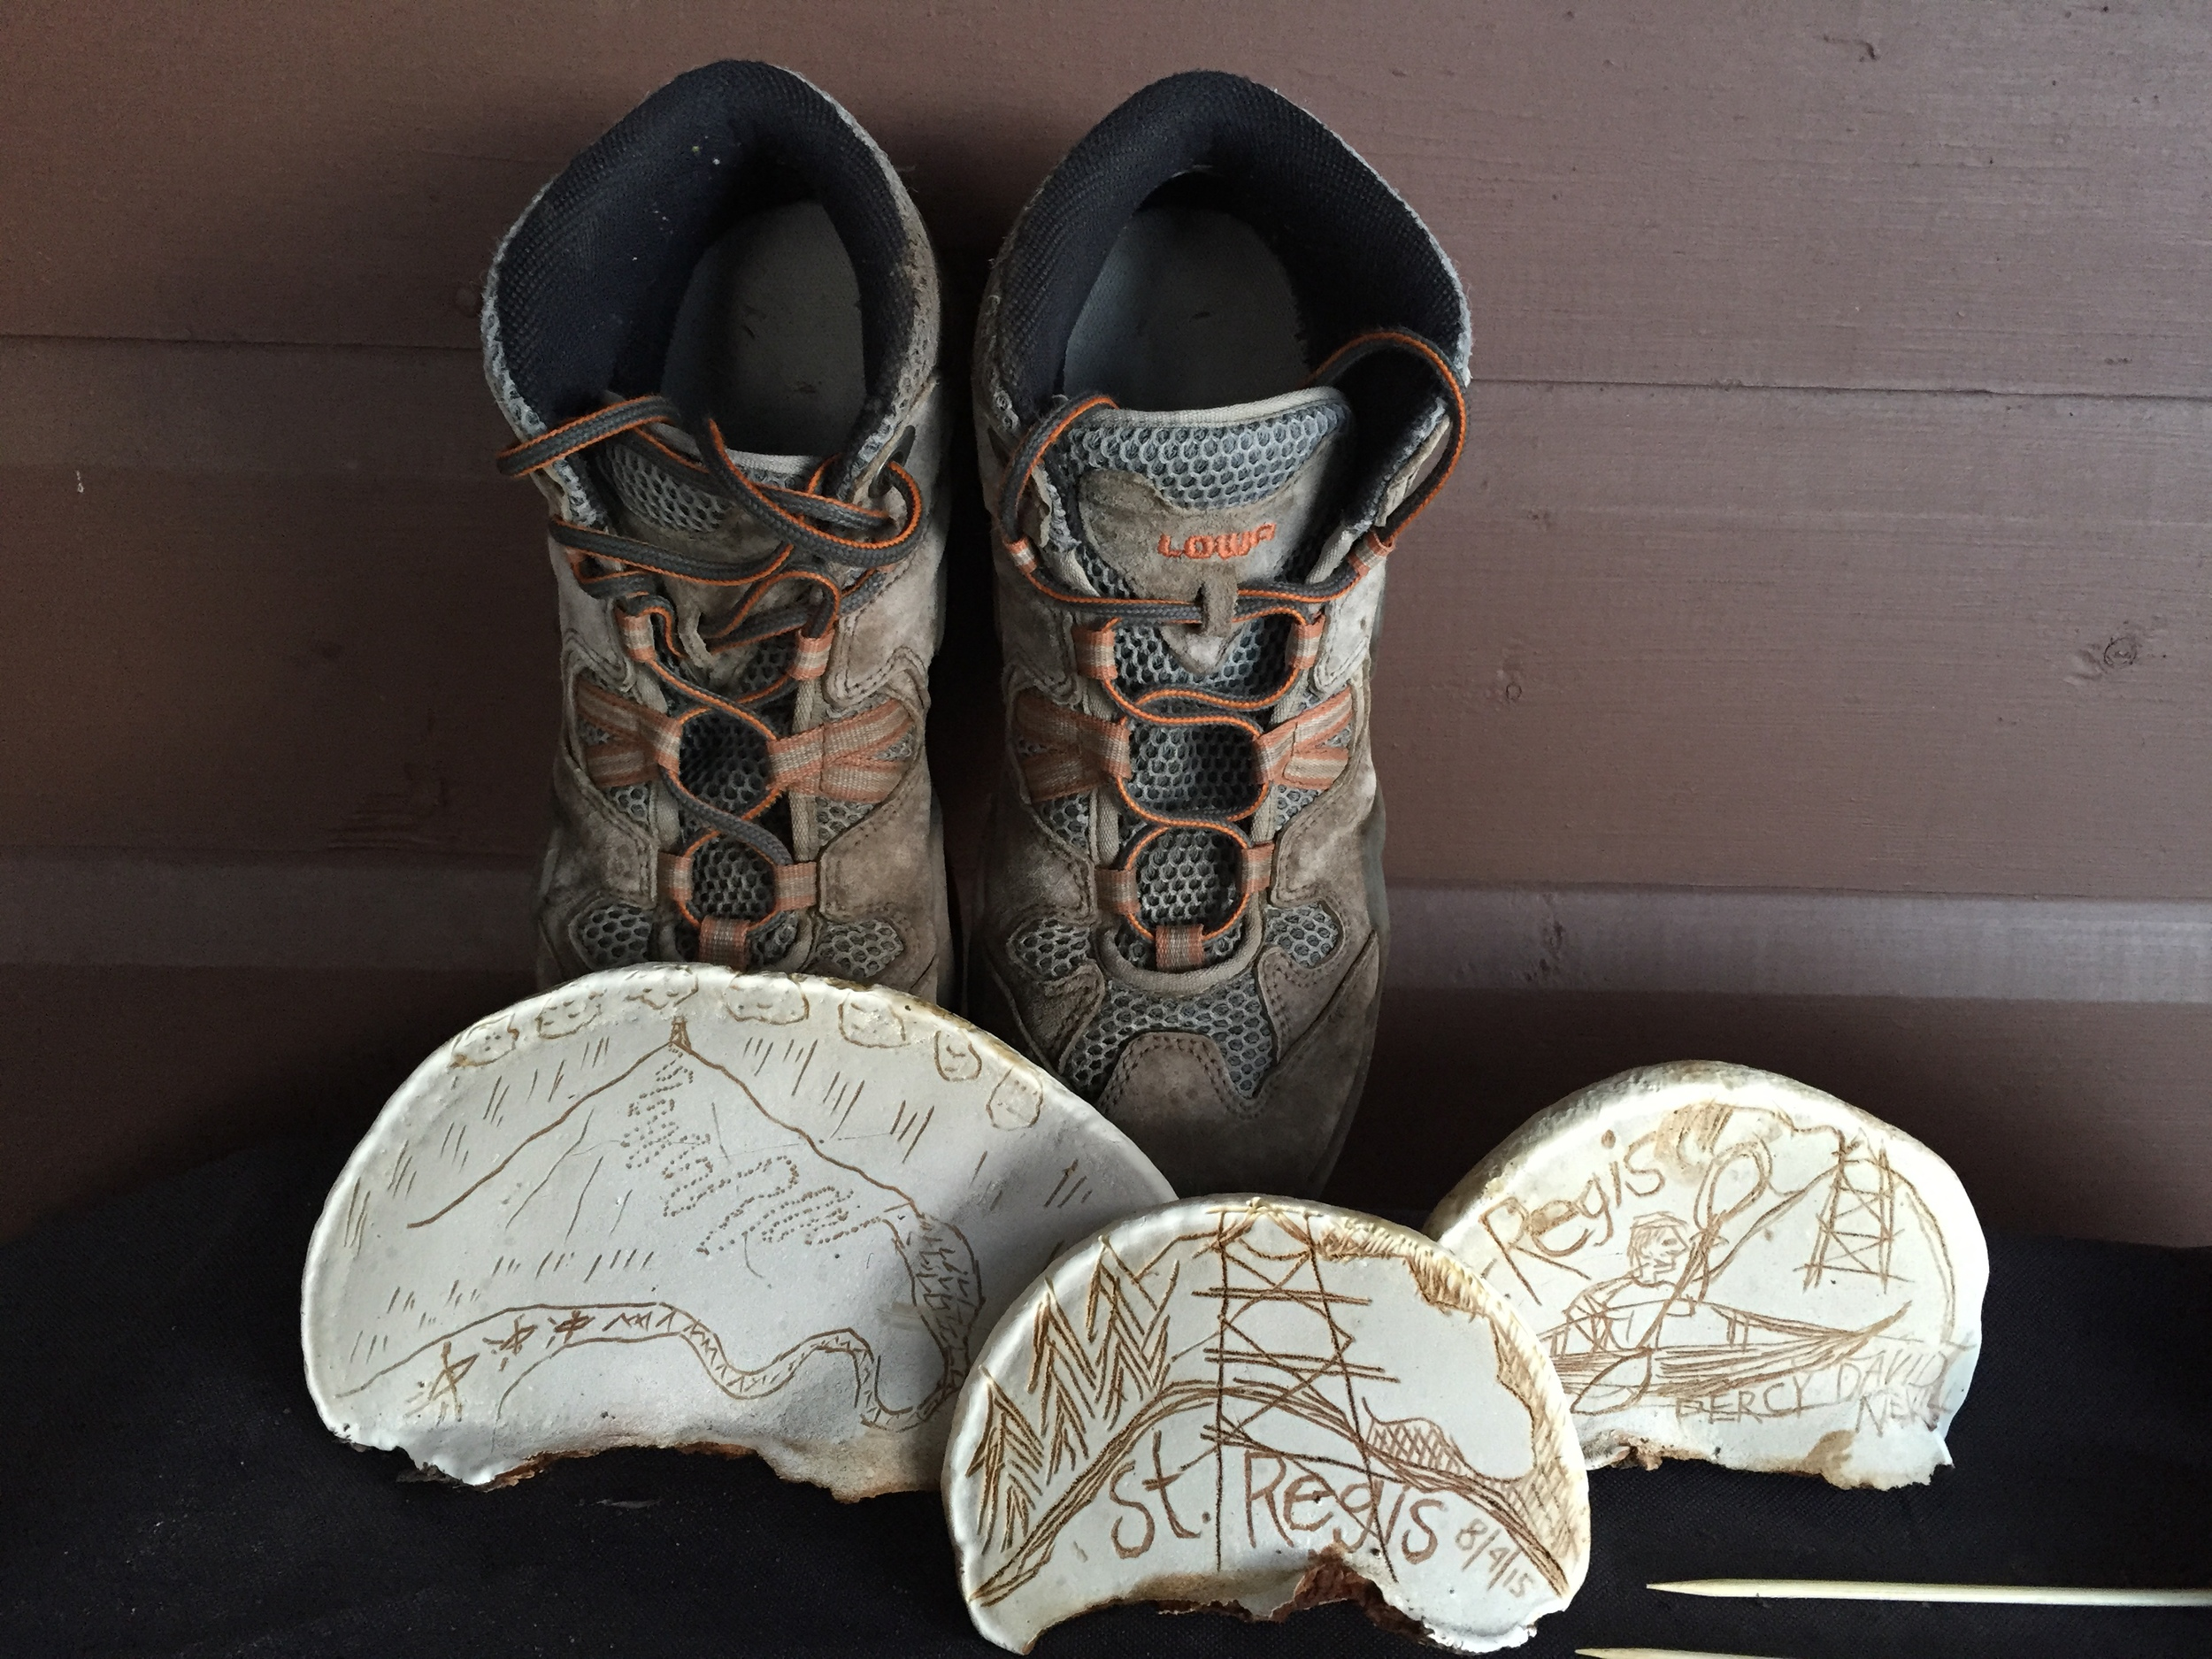 Artifacts of outdoor life in the Adirondacks